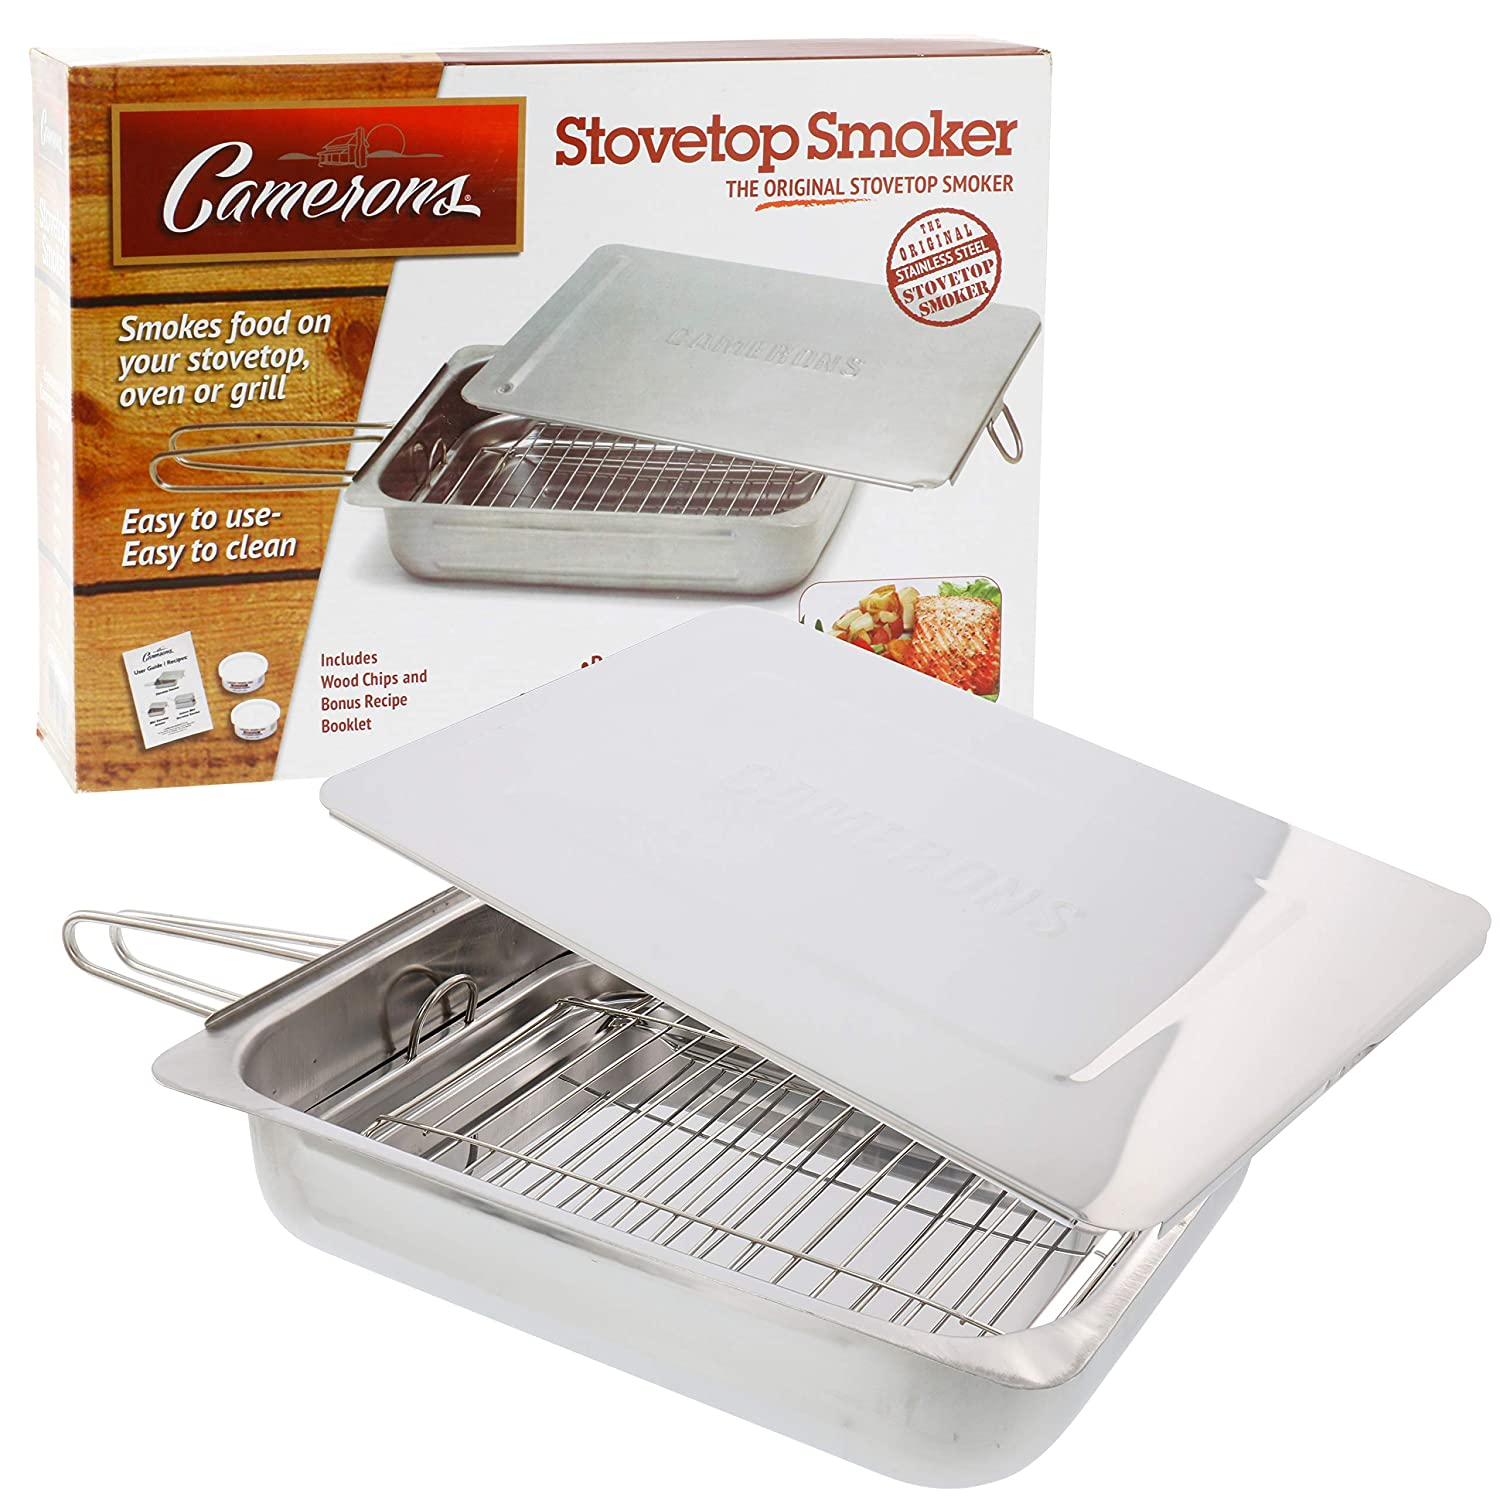 "Stovetop Smoker - The Original (11"" x 15"" x 3.5"") Stainless Steel Smoking Box with Wood Chip Samples and Recipe Guide - Works Over Any Heat Source, Indoor or Outdoor"